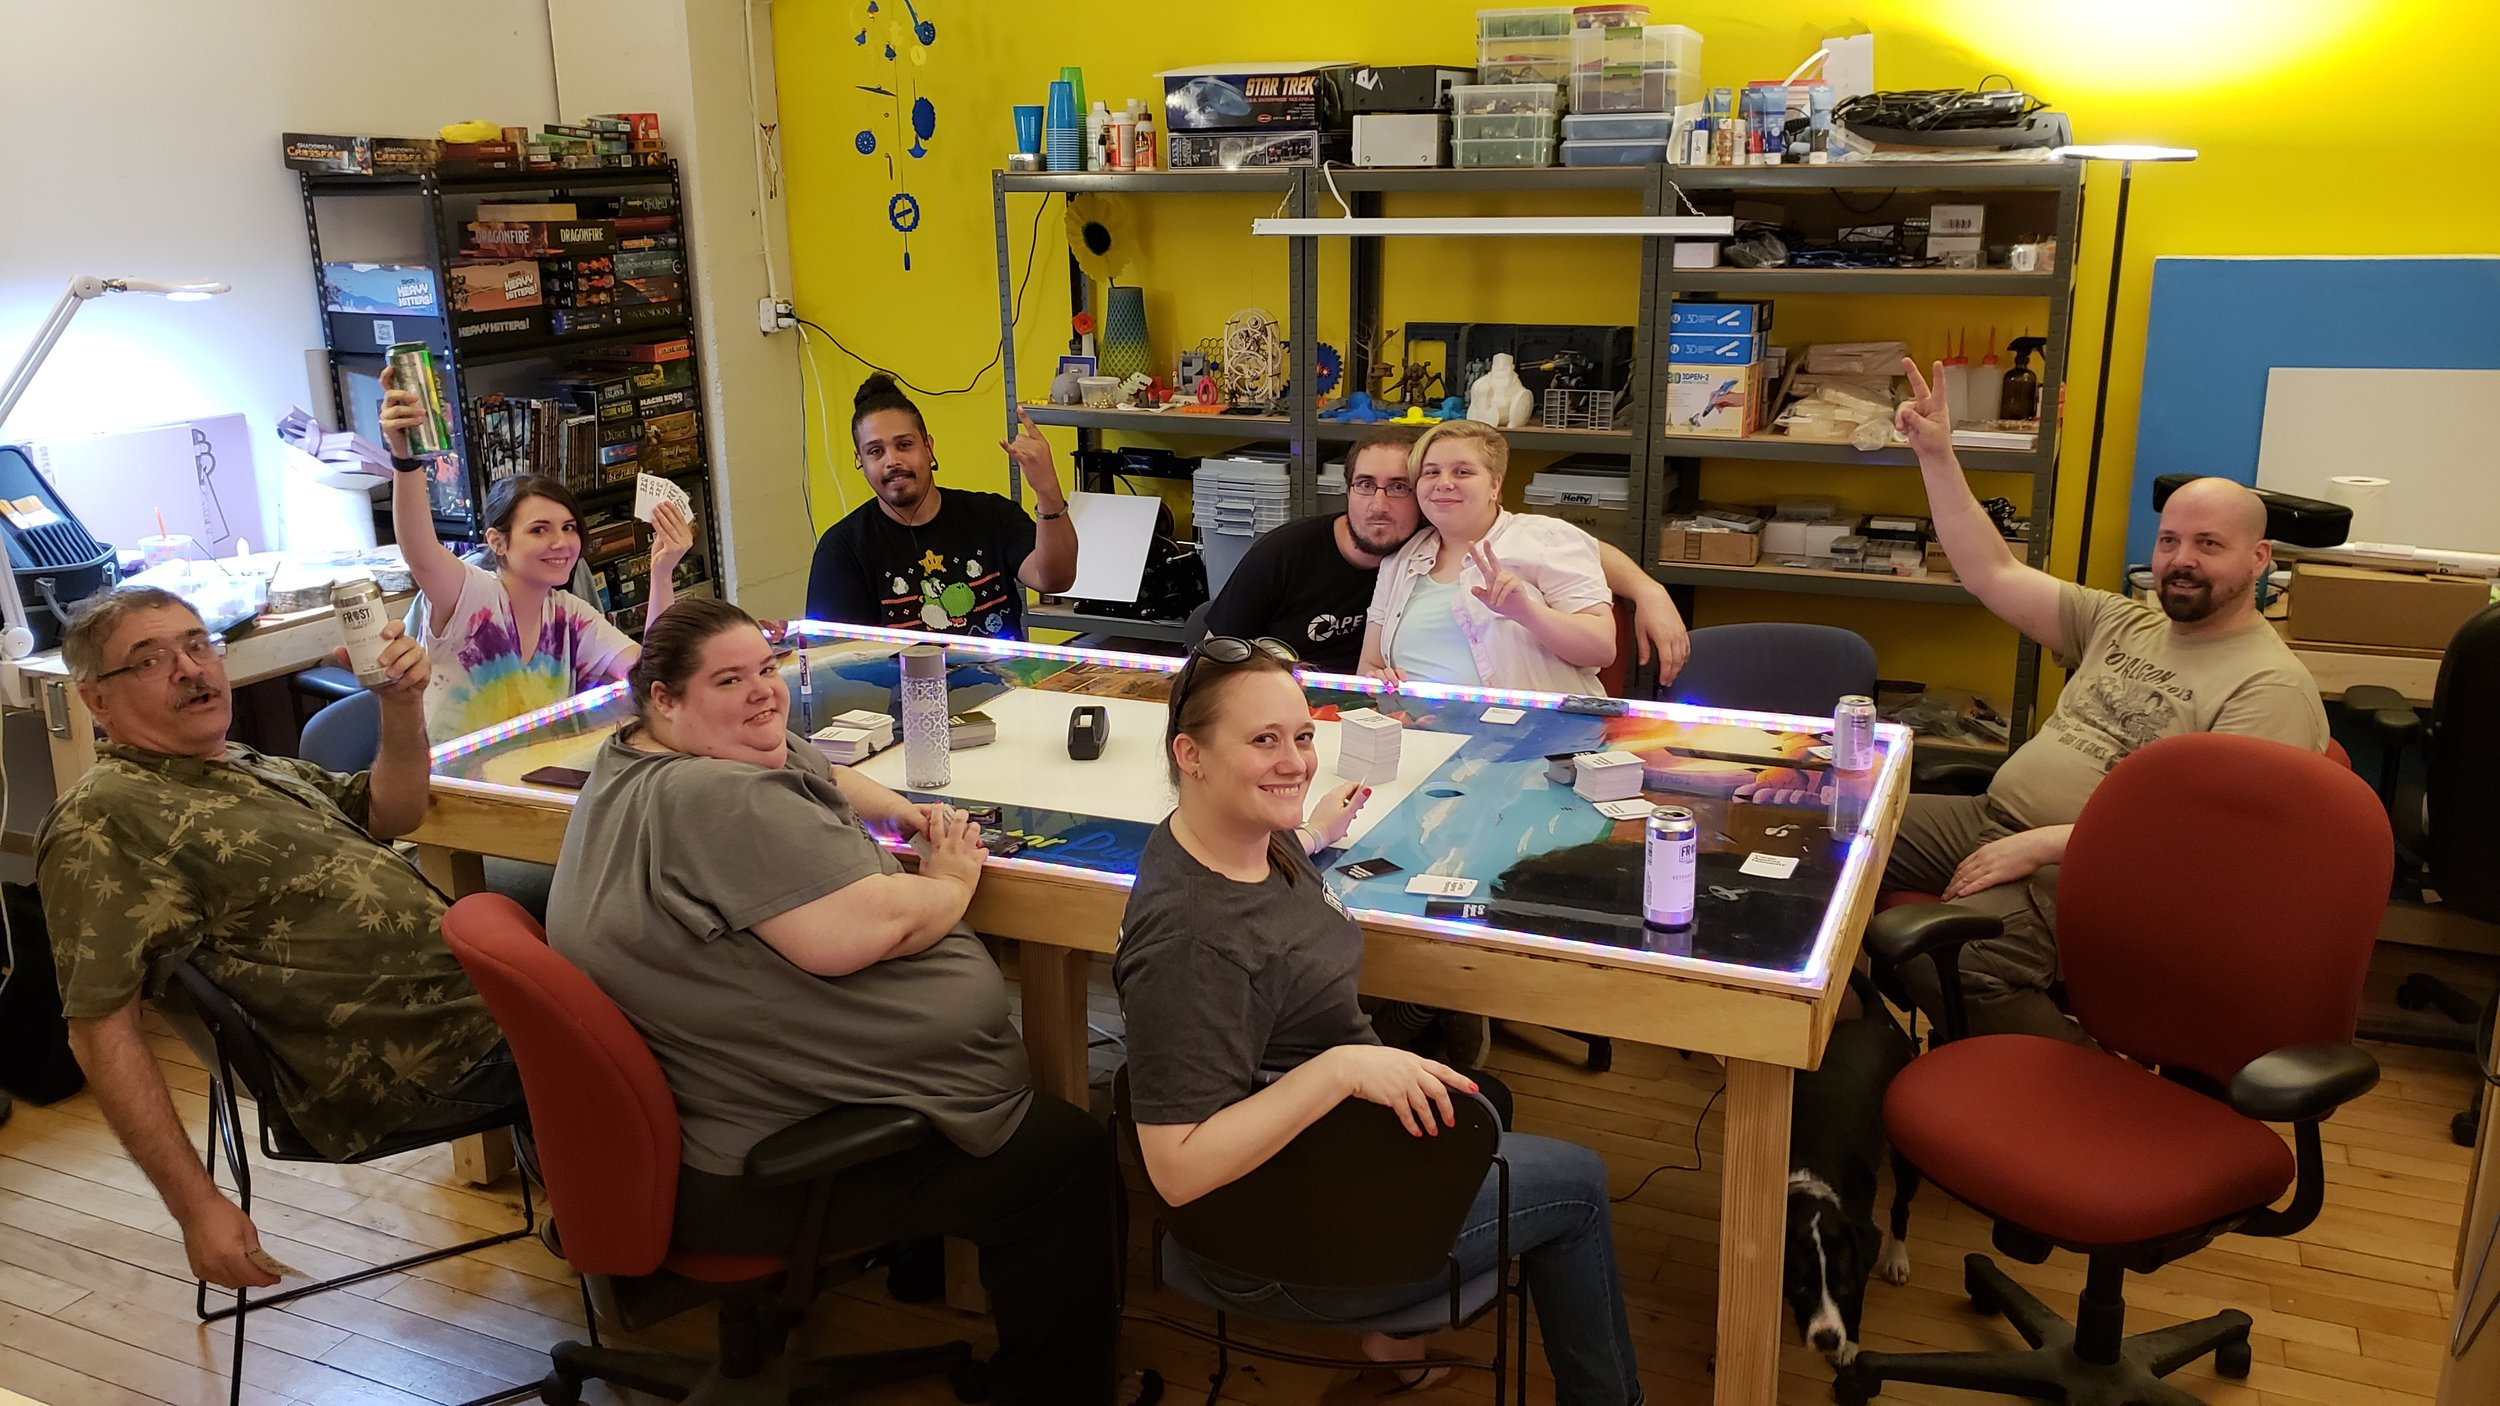 Haverhill Tabletop Gamers - LIke, Follow and Share our Facebook Page